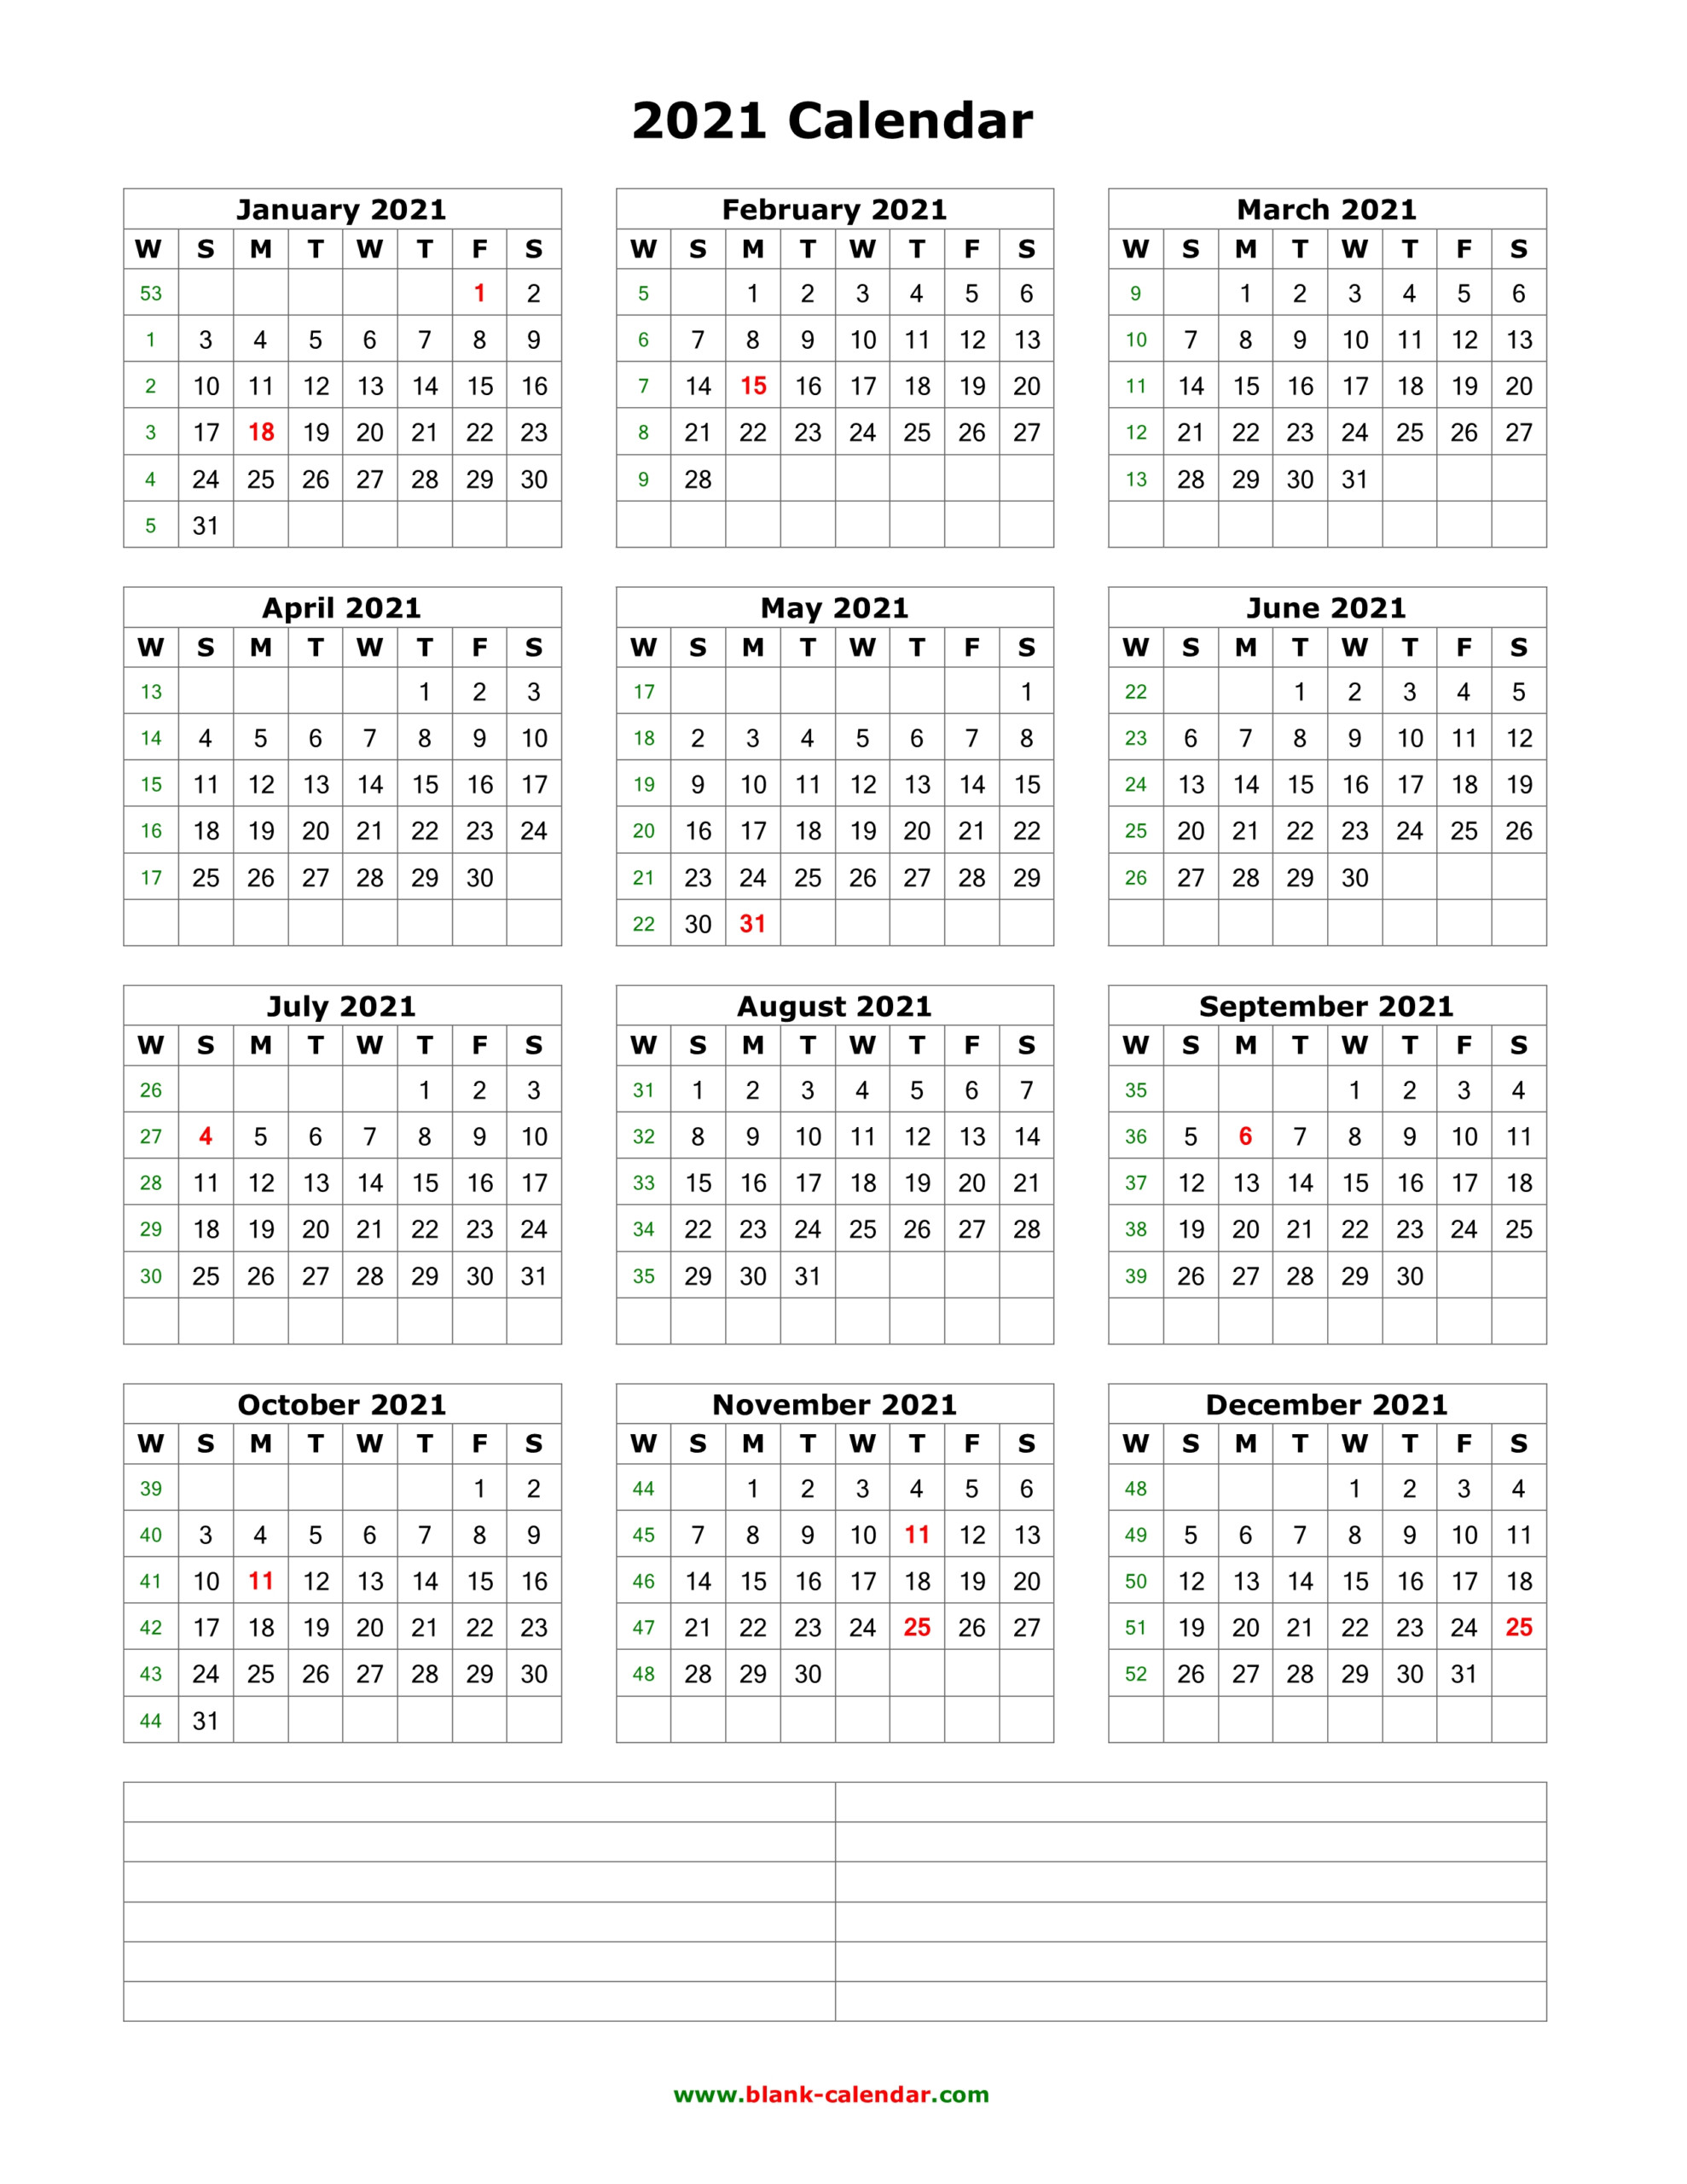 Download Blank Calendar 2021 With Space For Notes (12 Months